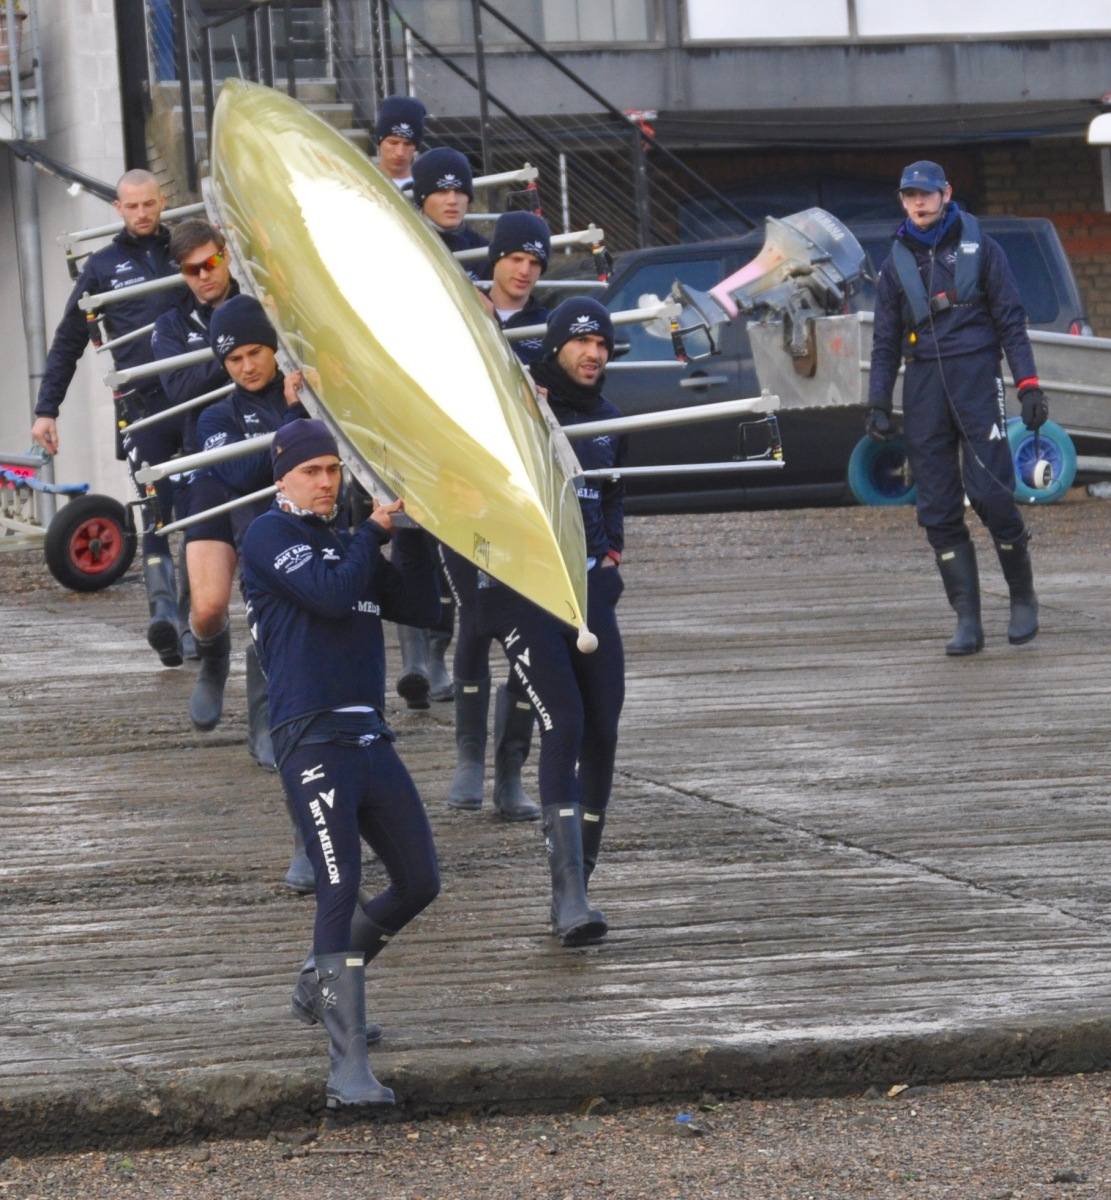 Tideway Week Tuesday: An Oxford Outing